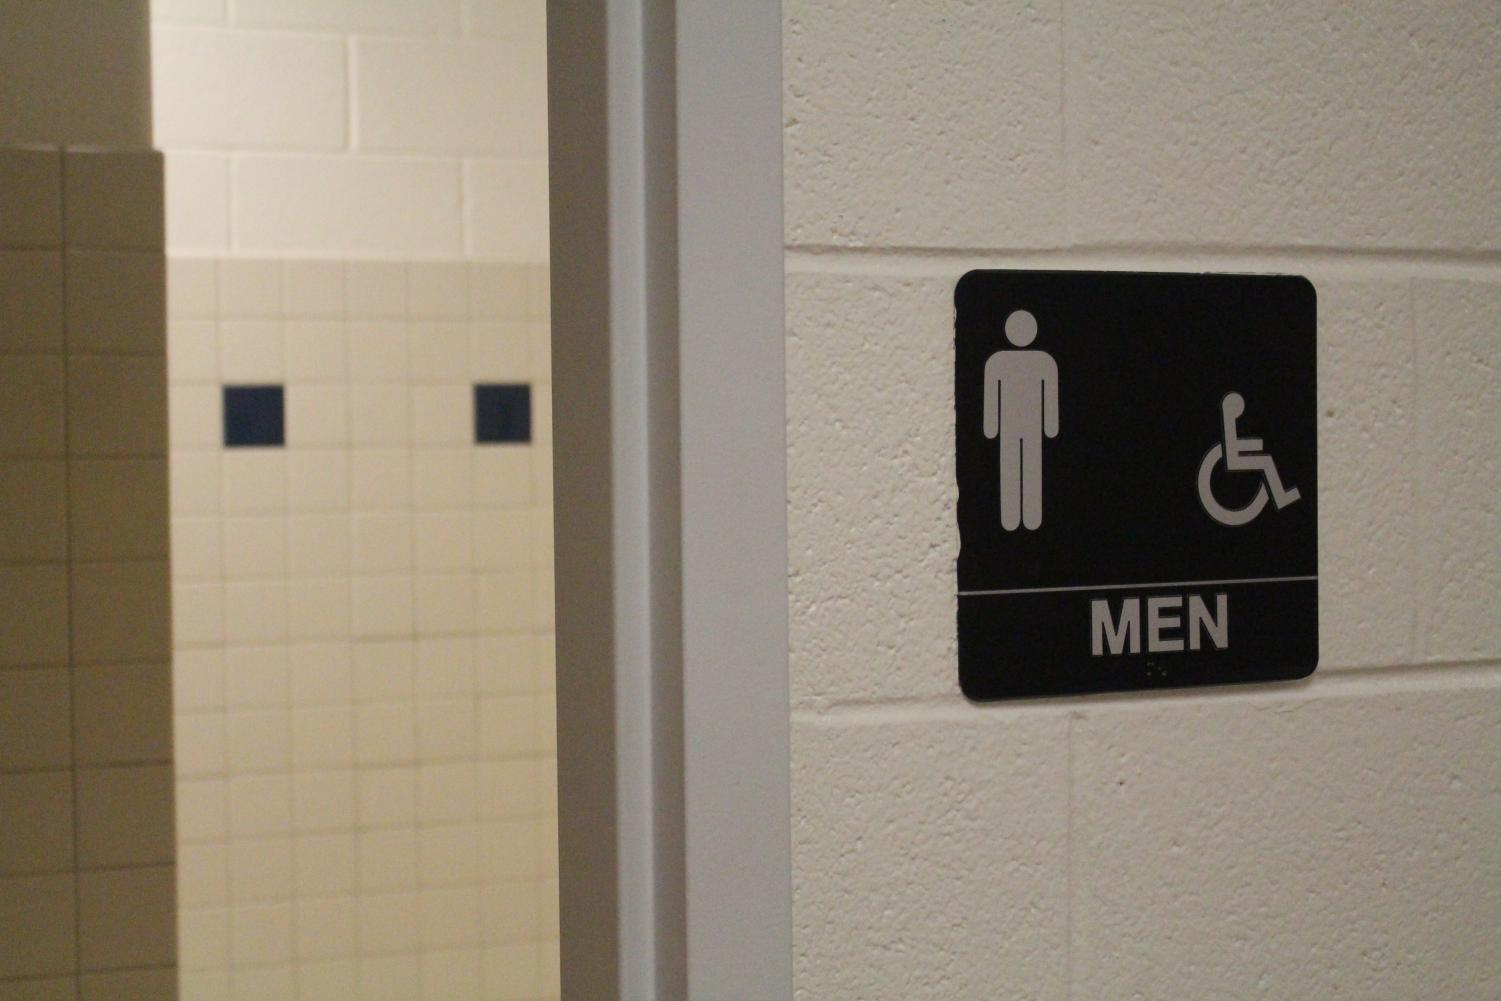 Students often go into the bathrooms during the day to vape.